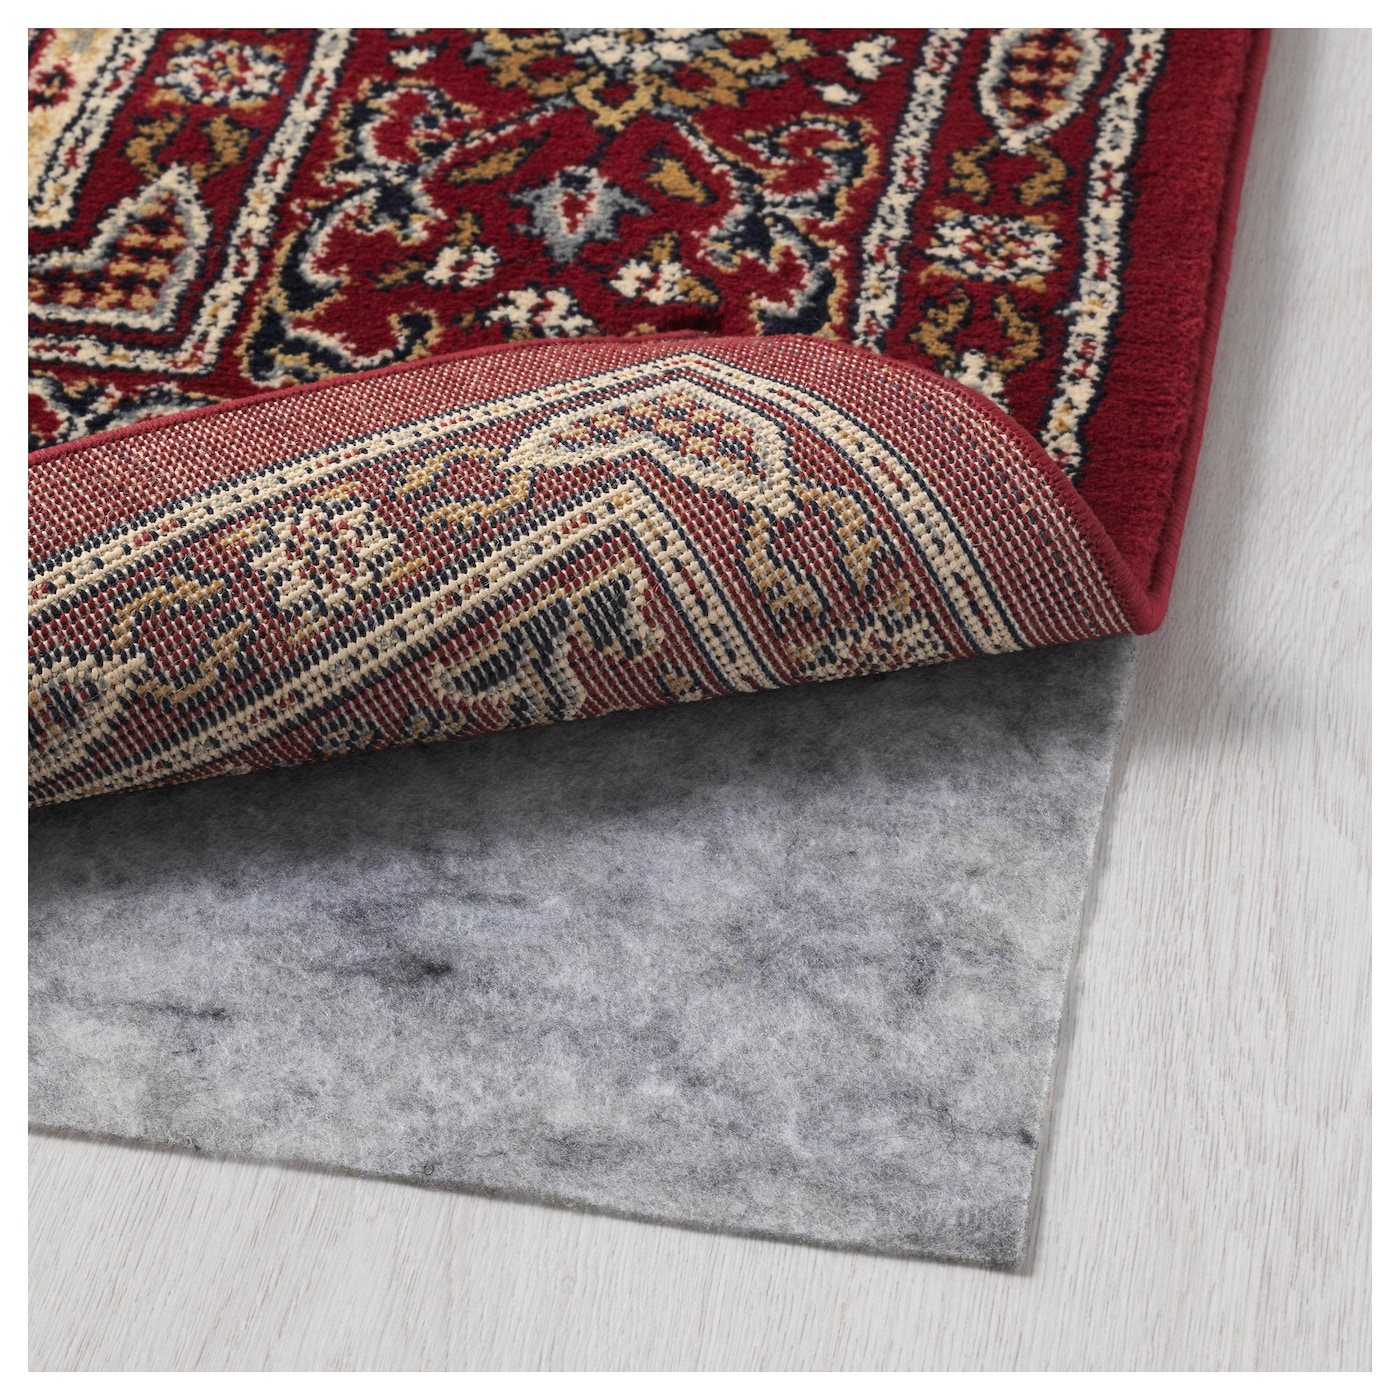 IKEA VALBY RUTA rug, low pile The thick pile dampens sound and provides a soft surface to walk on.